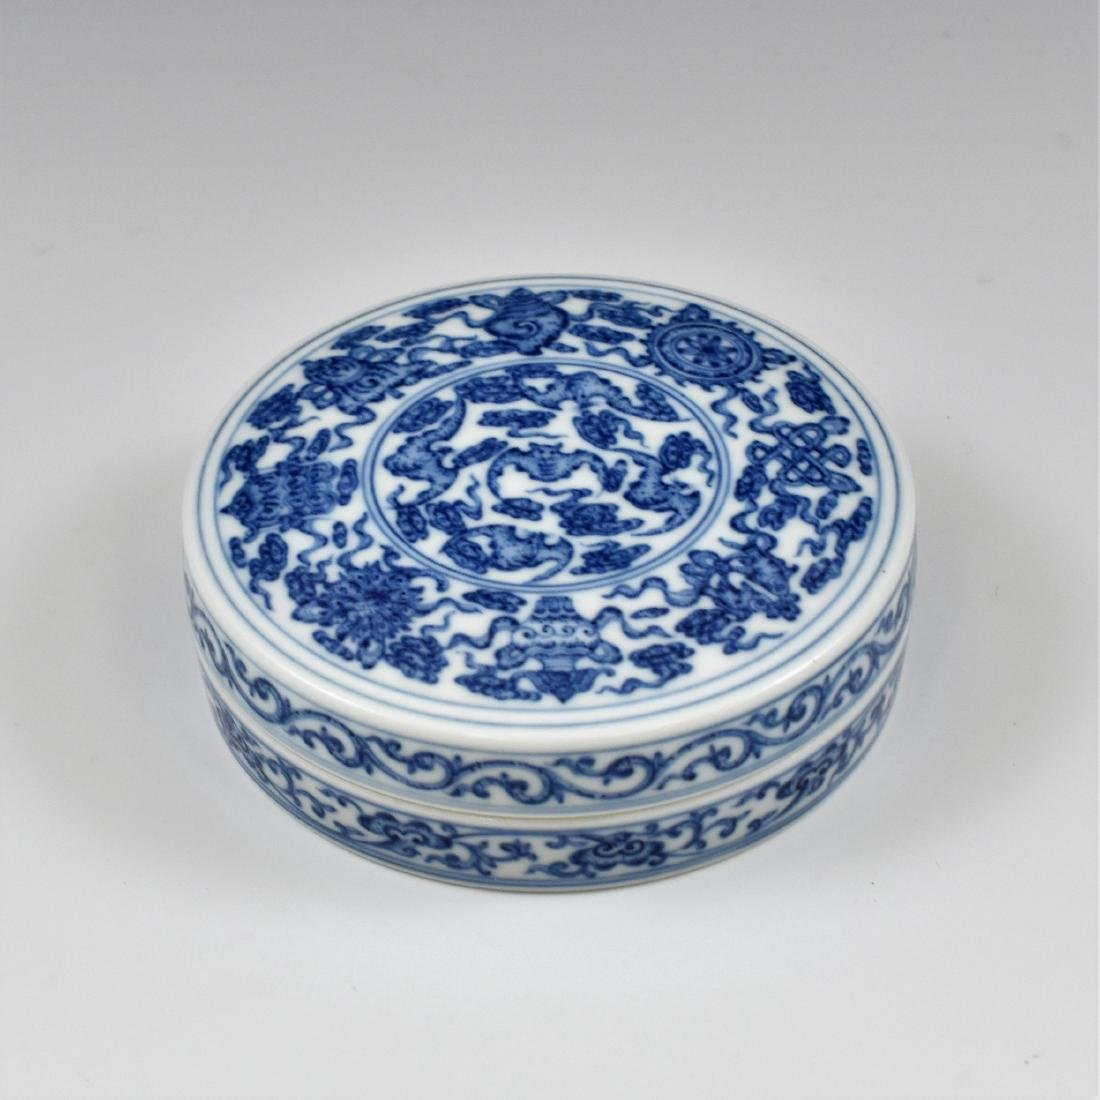 QING CHINESE PORCELAIN INK BOX - 2